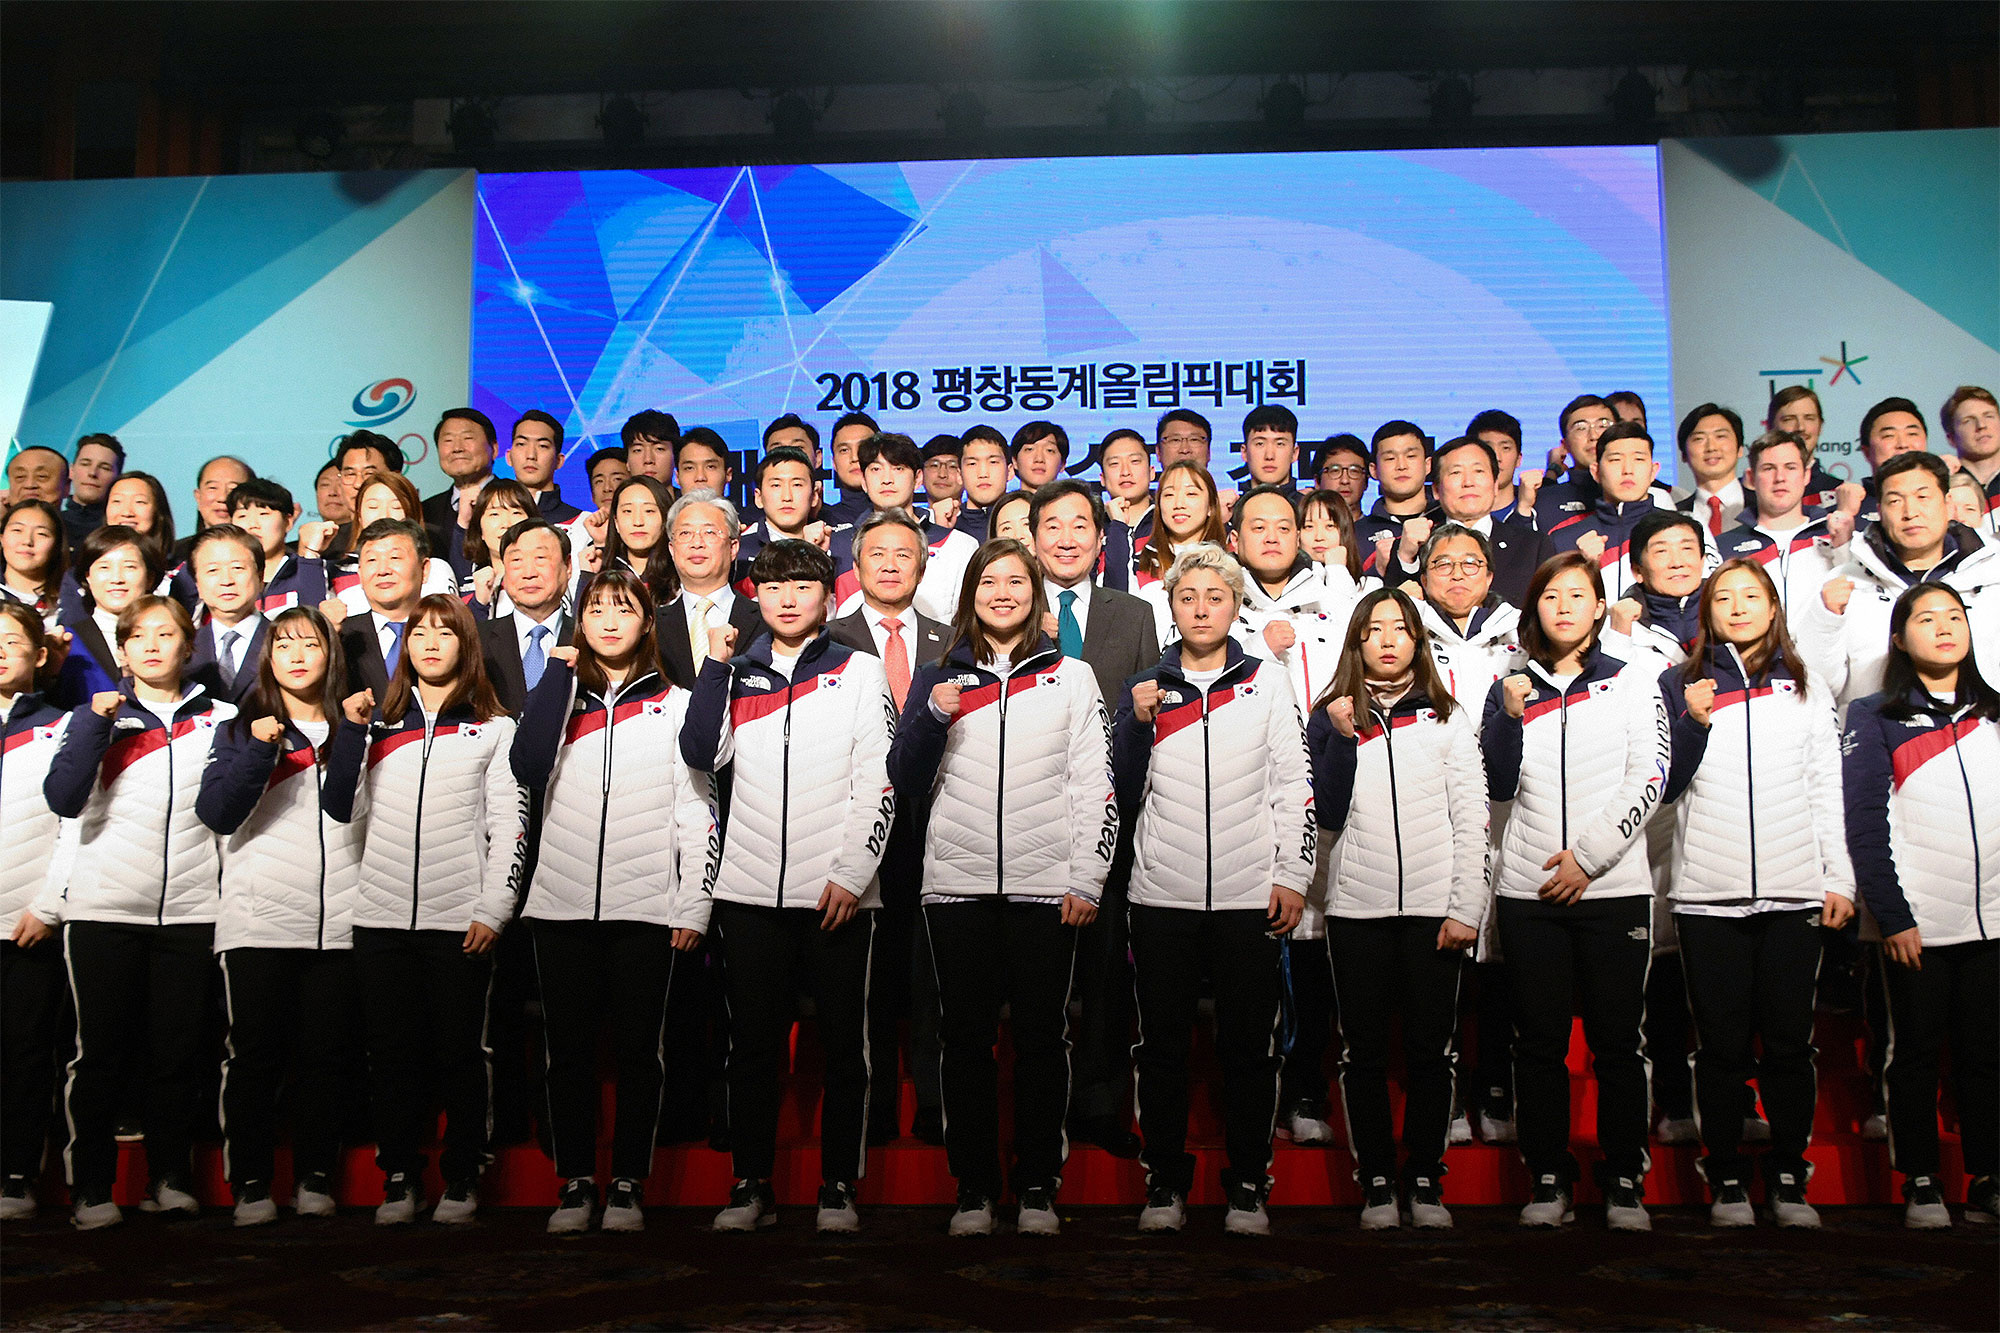 South Korean Team For PyeongChang Olympic Forming Ceremony